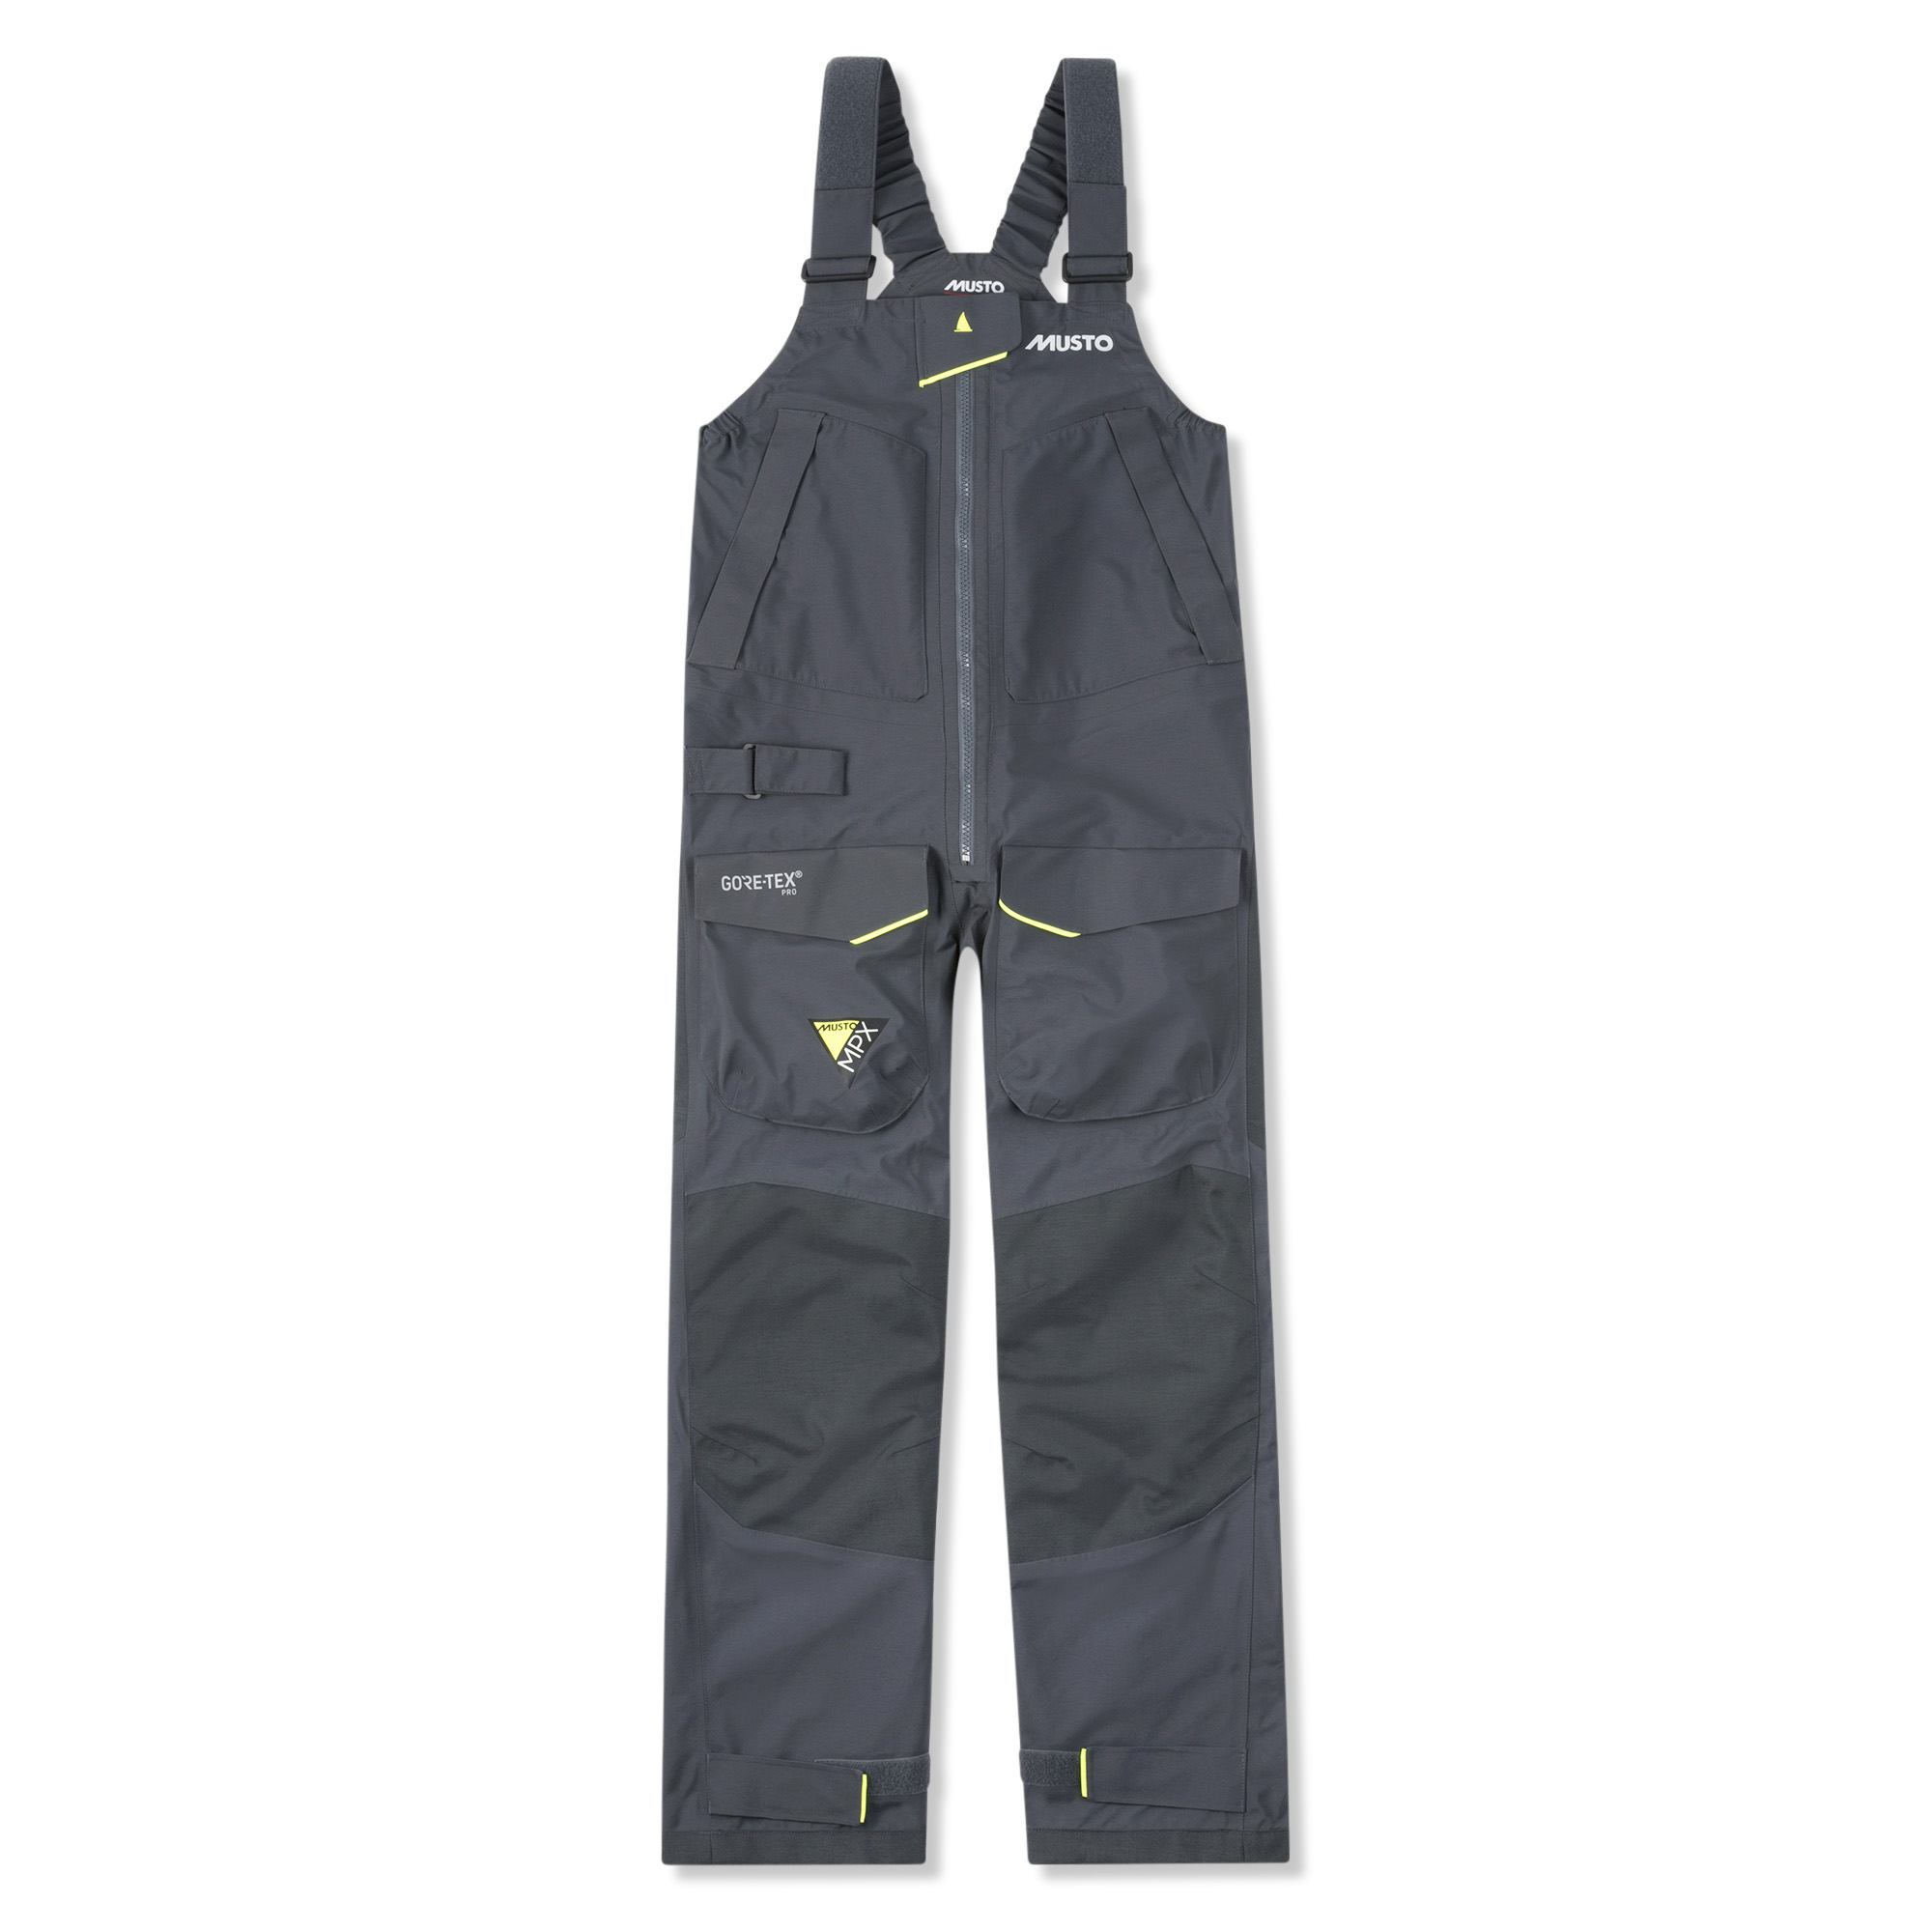 Musto Women's MPX Gore-tex Pro Offshore Trousers (80914)